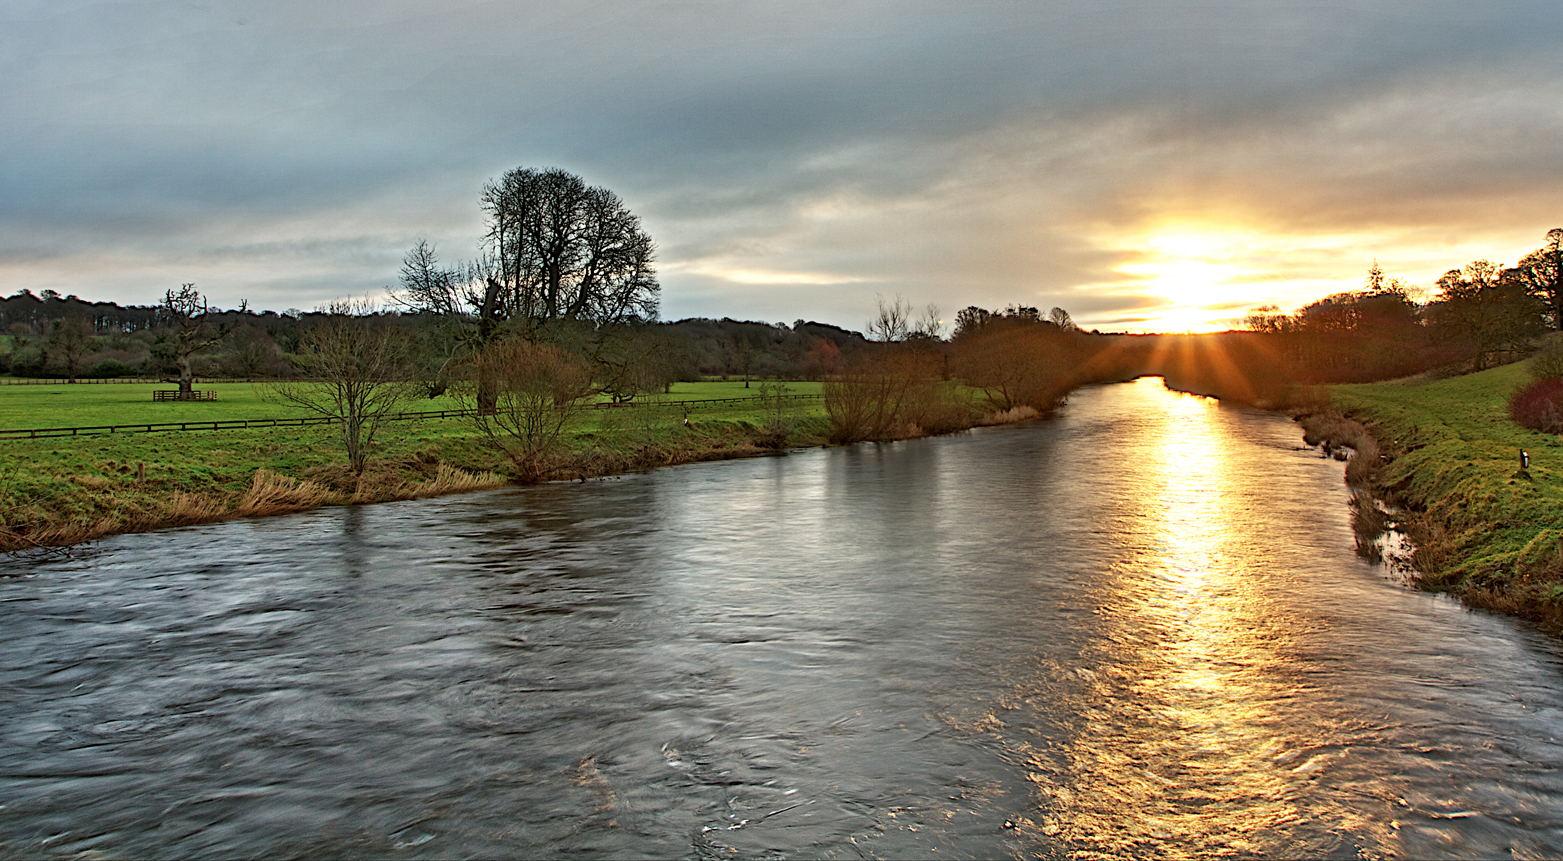 Sunrise over the River Nore, Kilkenny - 2/Project52